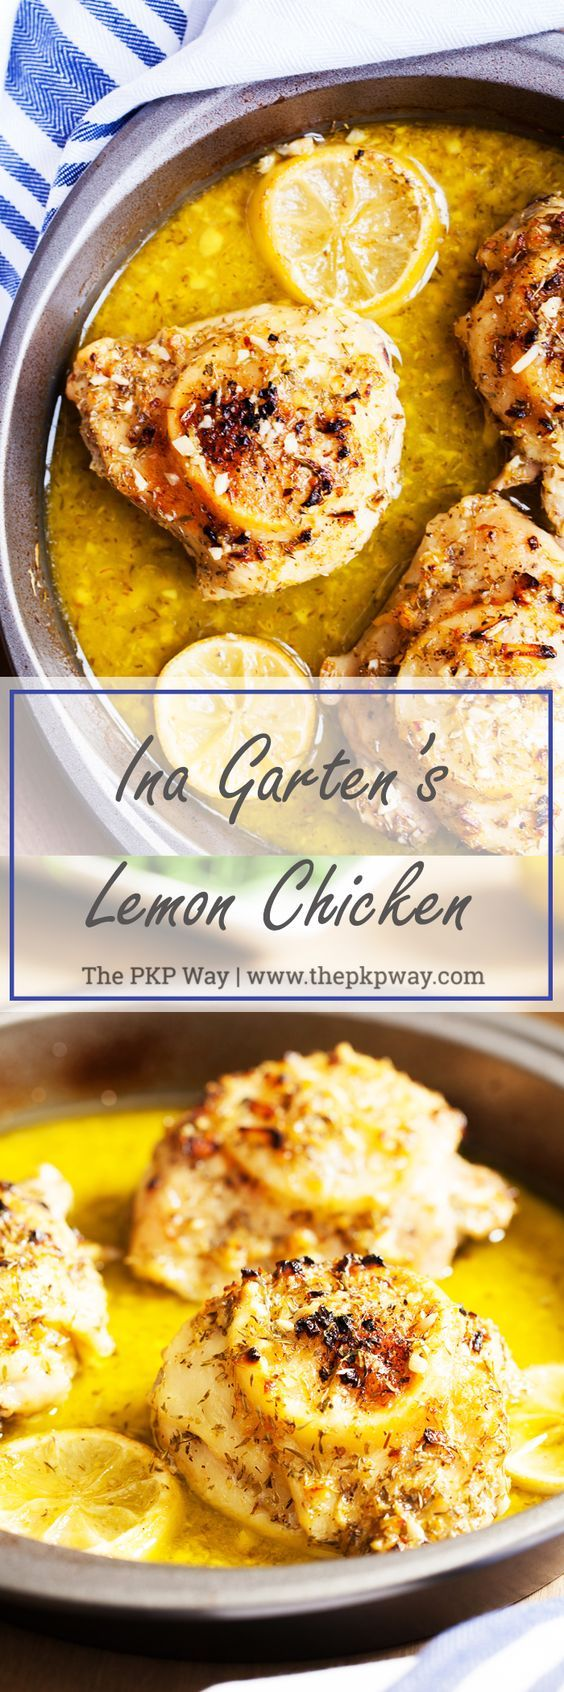 5559 best ina garten french cuisine images on pinterest - Ina garten french recipes ...